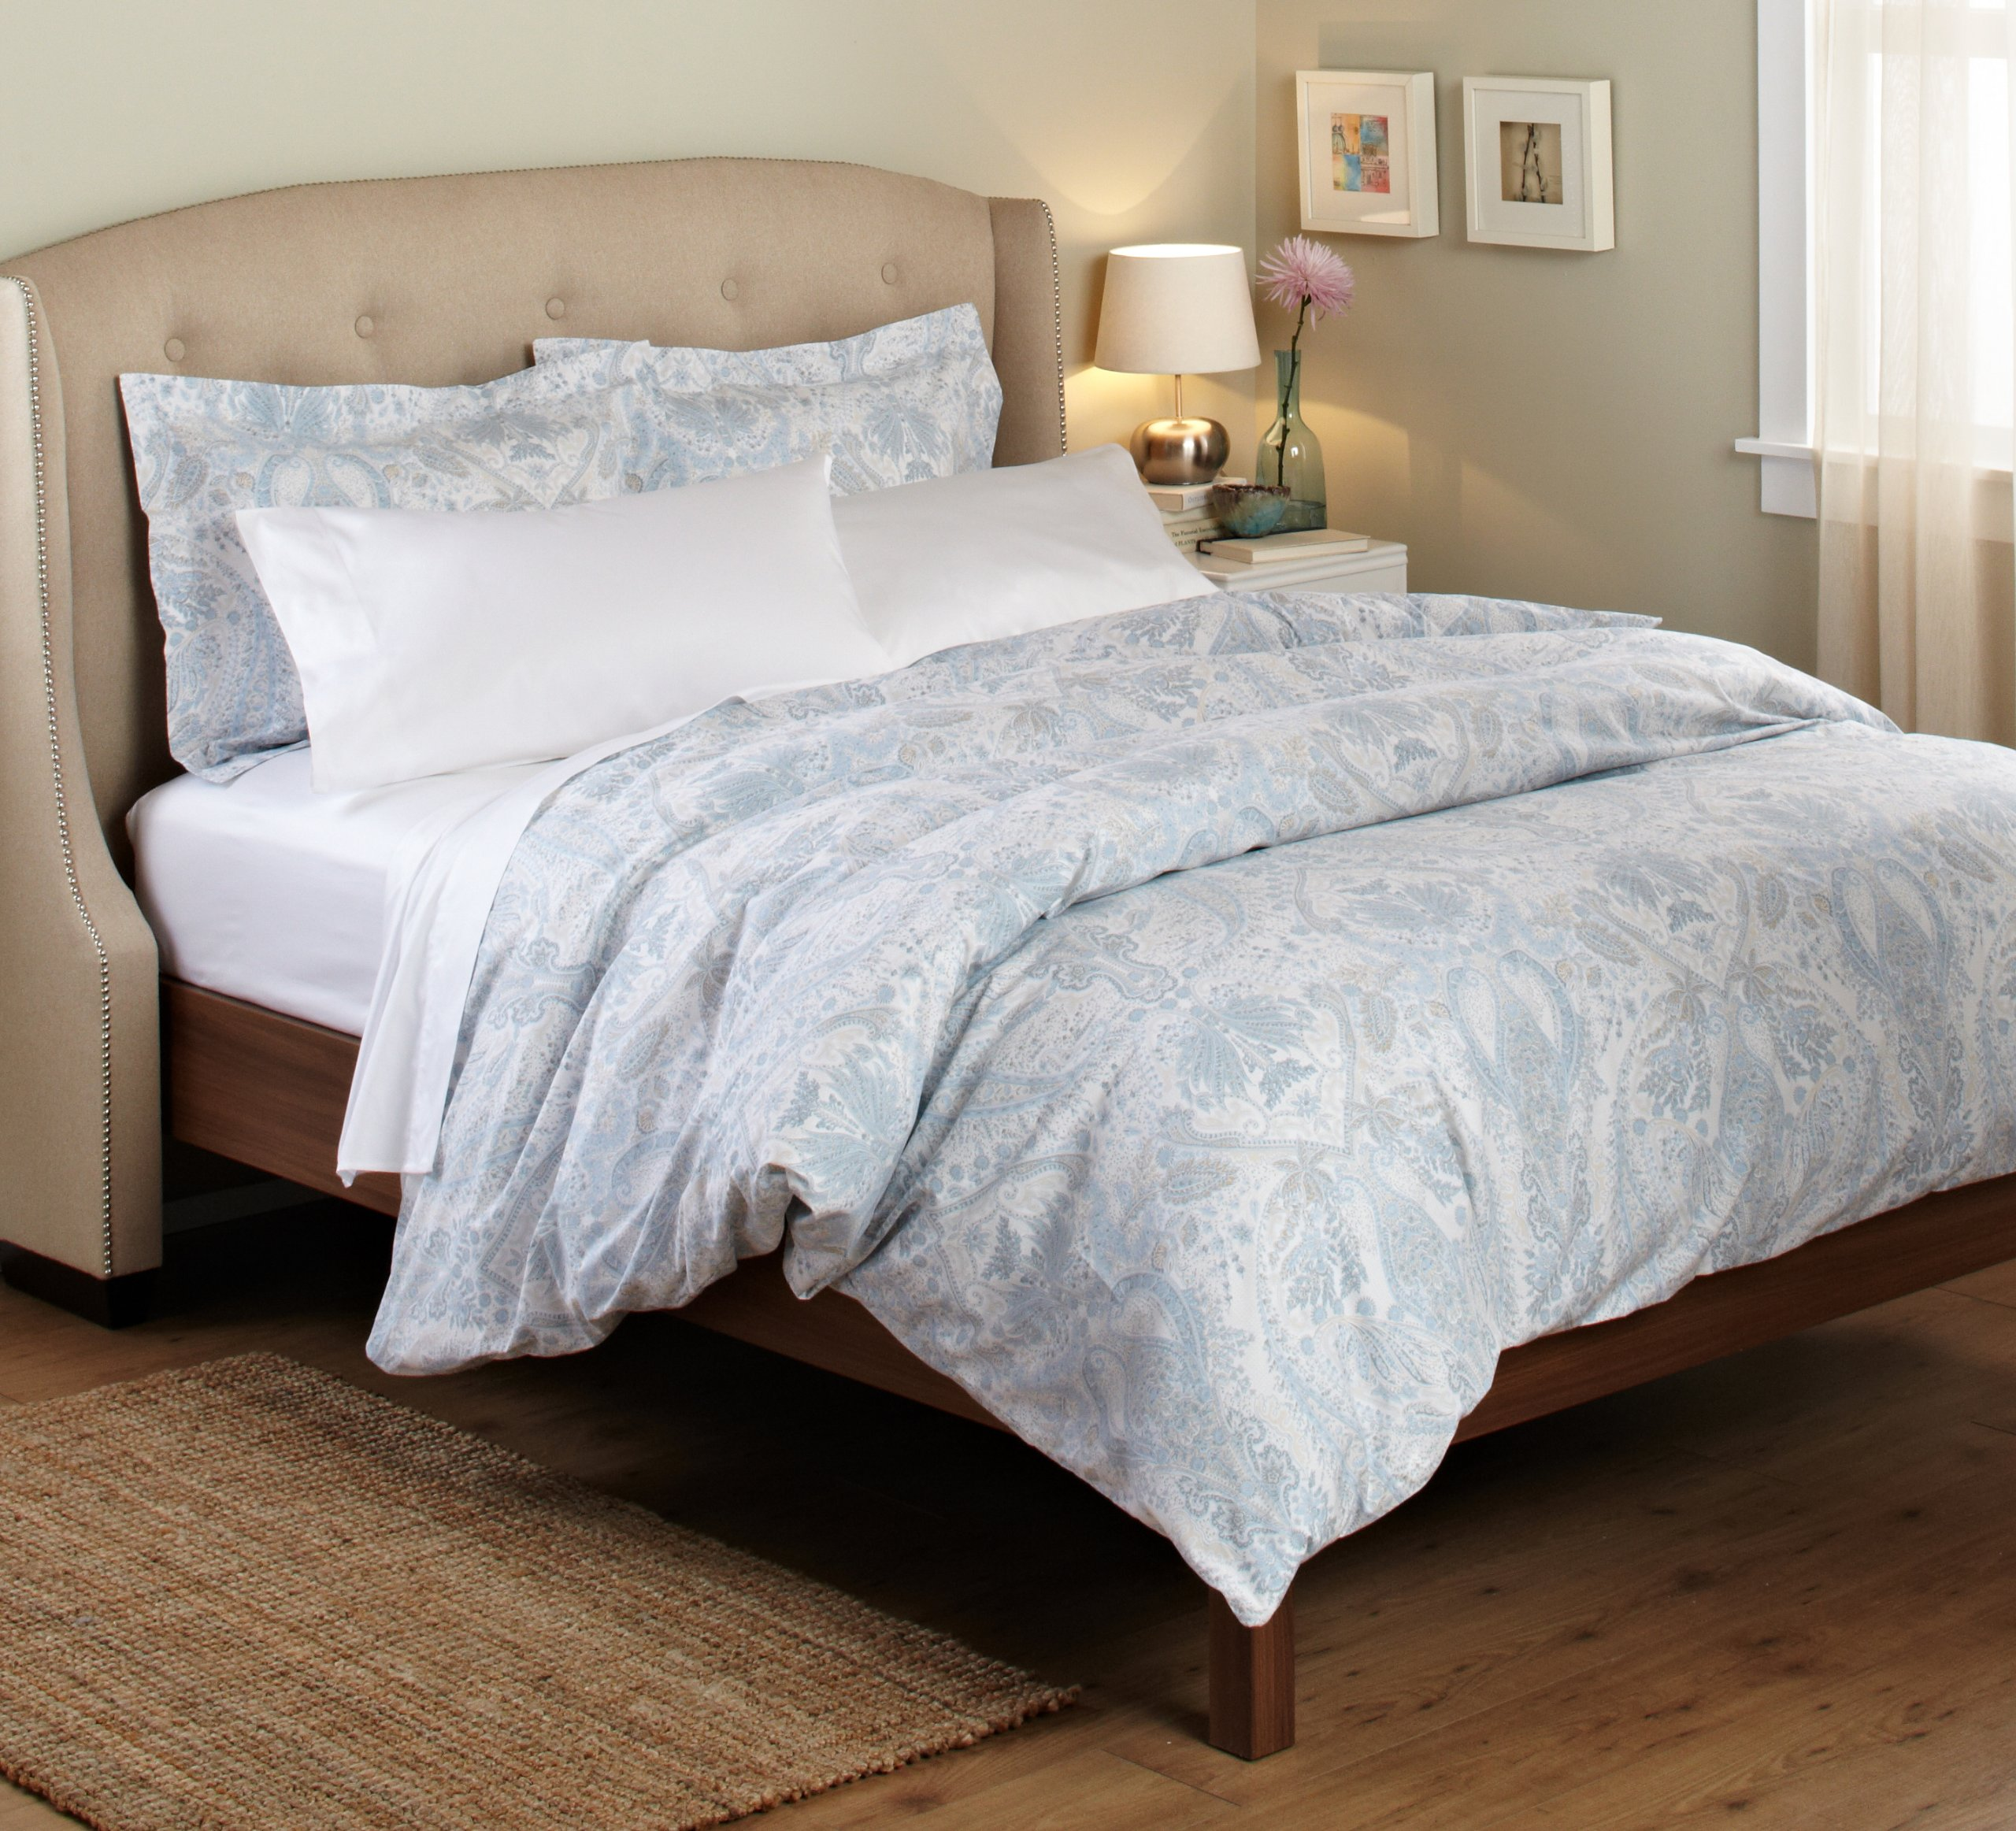 Duvet Covers Queen Give your space an instant update with the addition of a simple duvet cover for your queen bed. From a simple solid to a bold pattern, finding the right cover can change the look of .